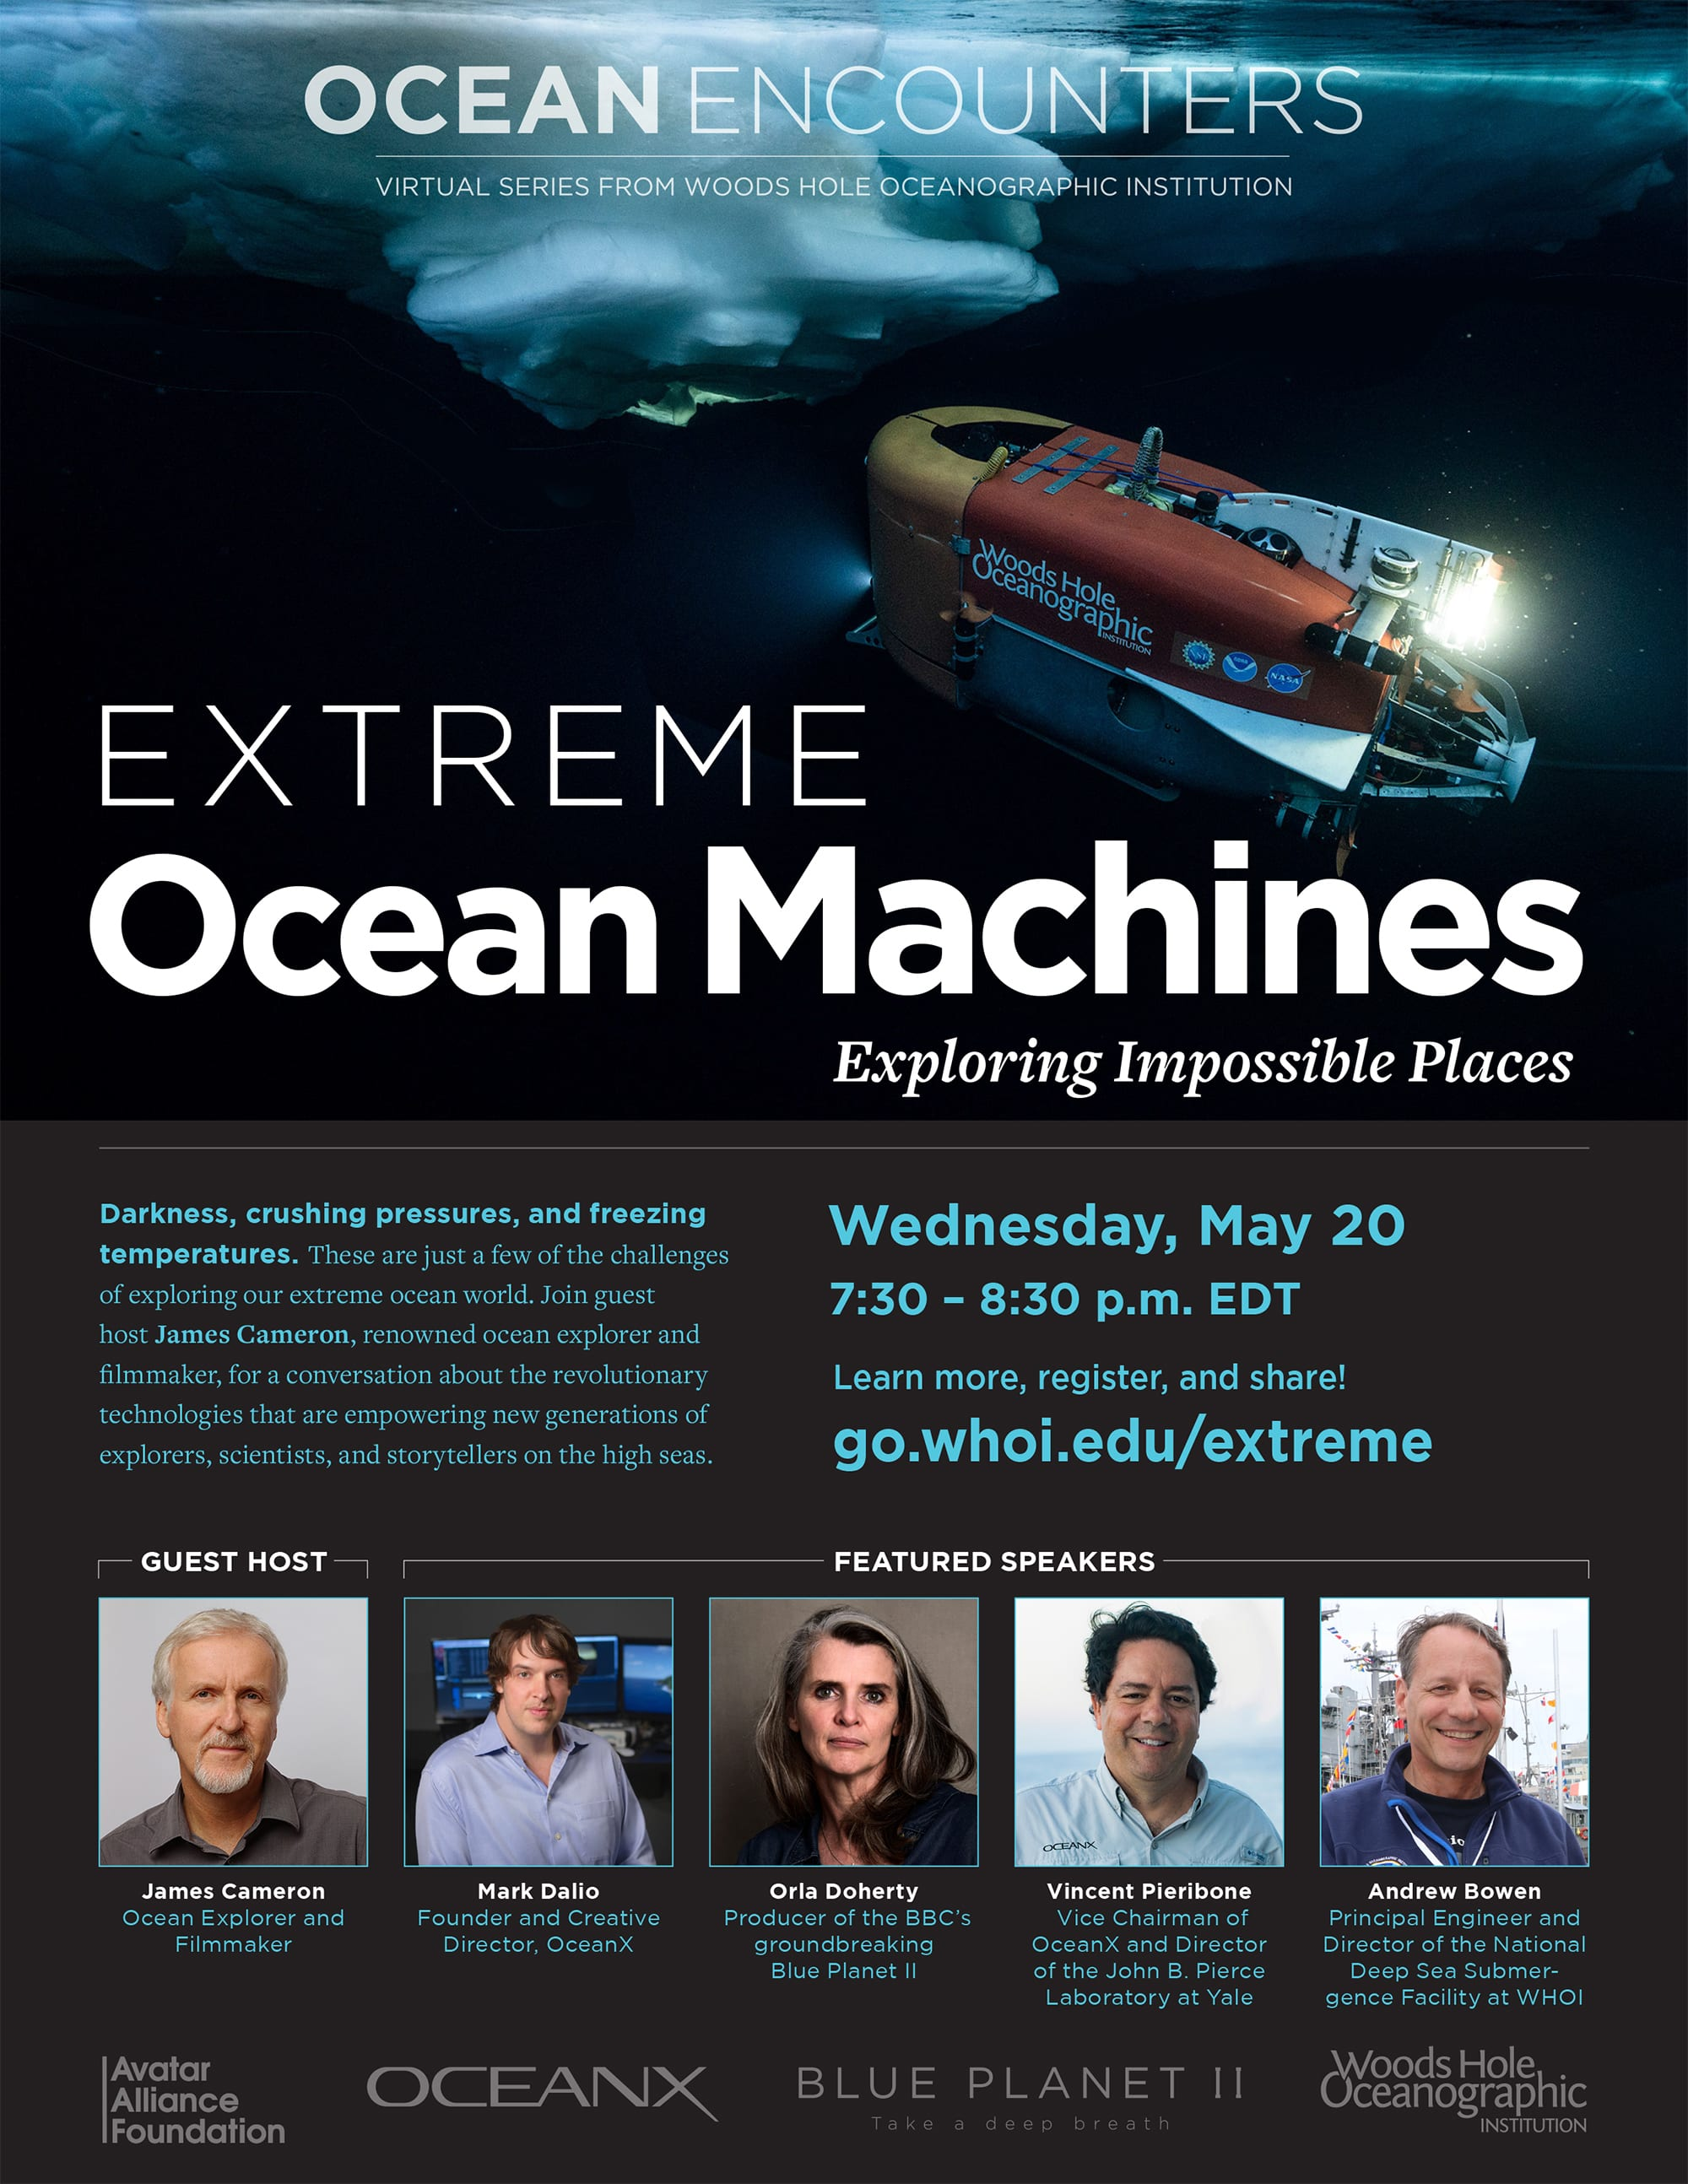 "<a href=""https://www.whoi.edu/wp-content/uploads/2020/05/OE-ExtremeMachinesV3.pdf"">&#0187; Download flyer</a>"